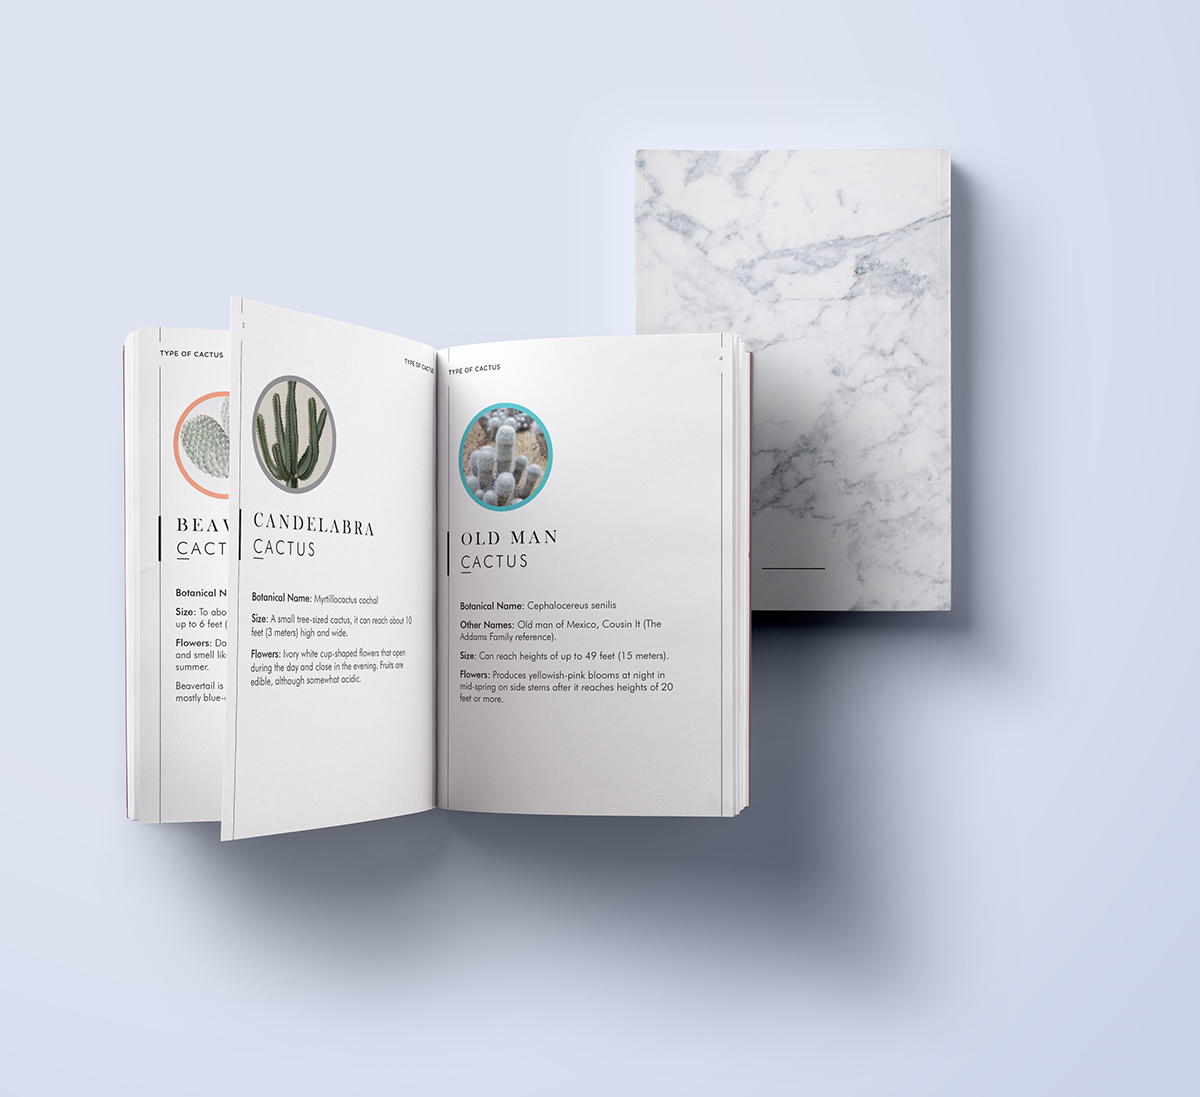 Hug Dealer - A guide to different type of cactus - on Behance